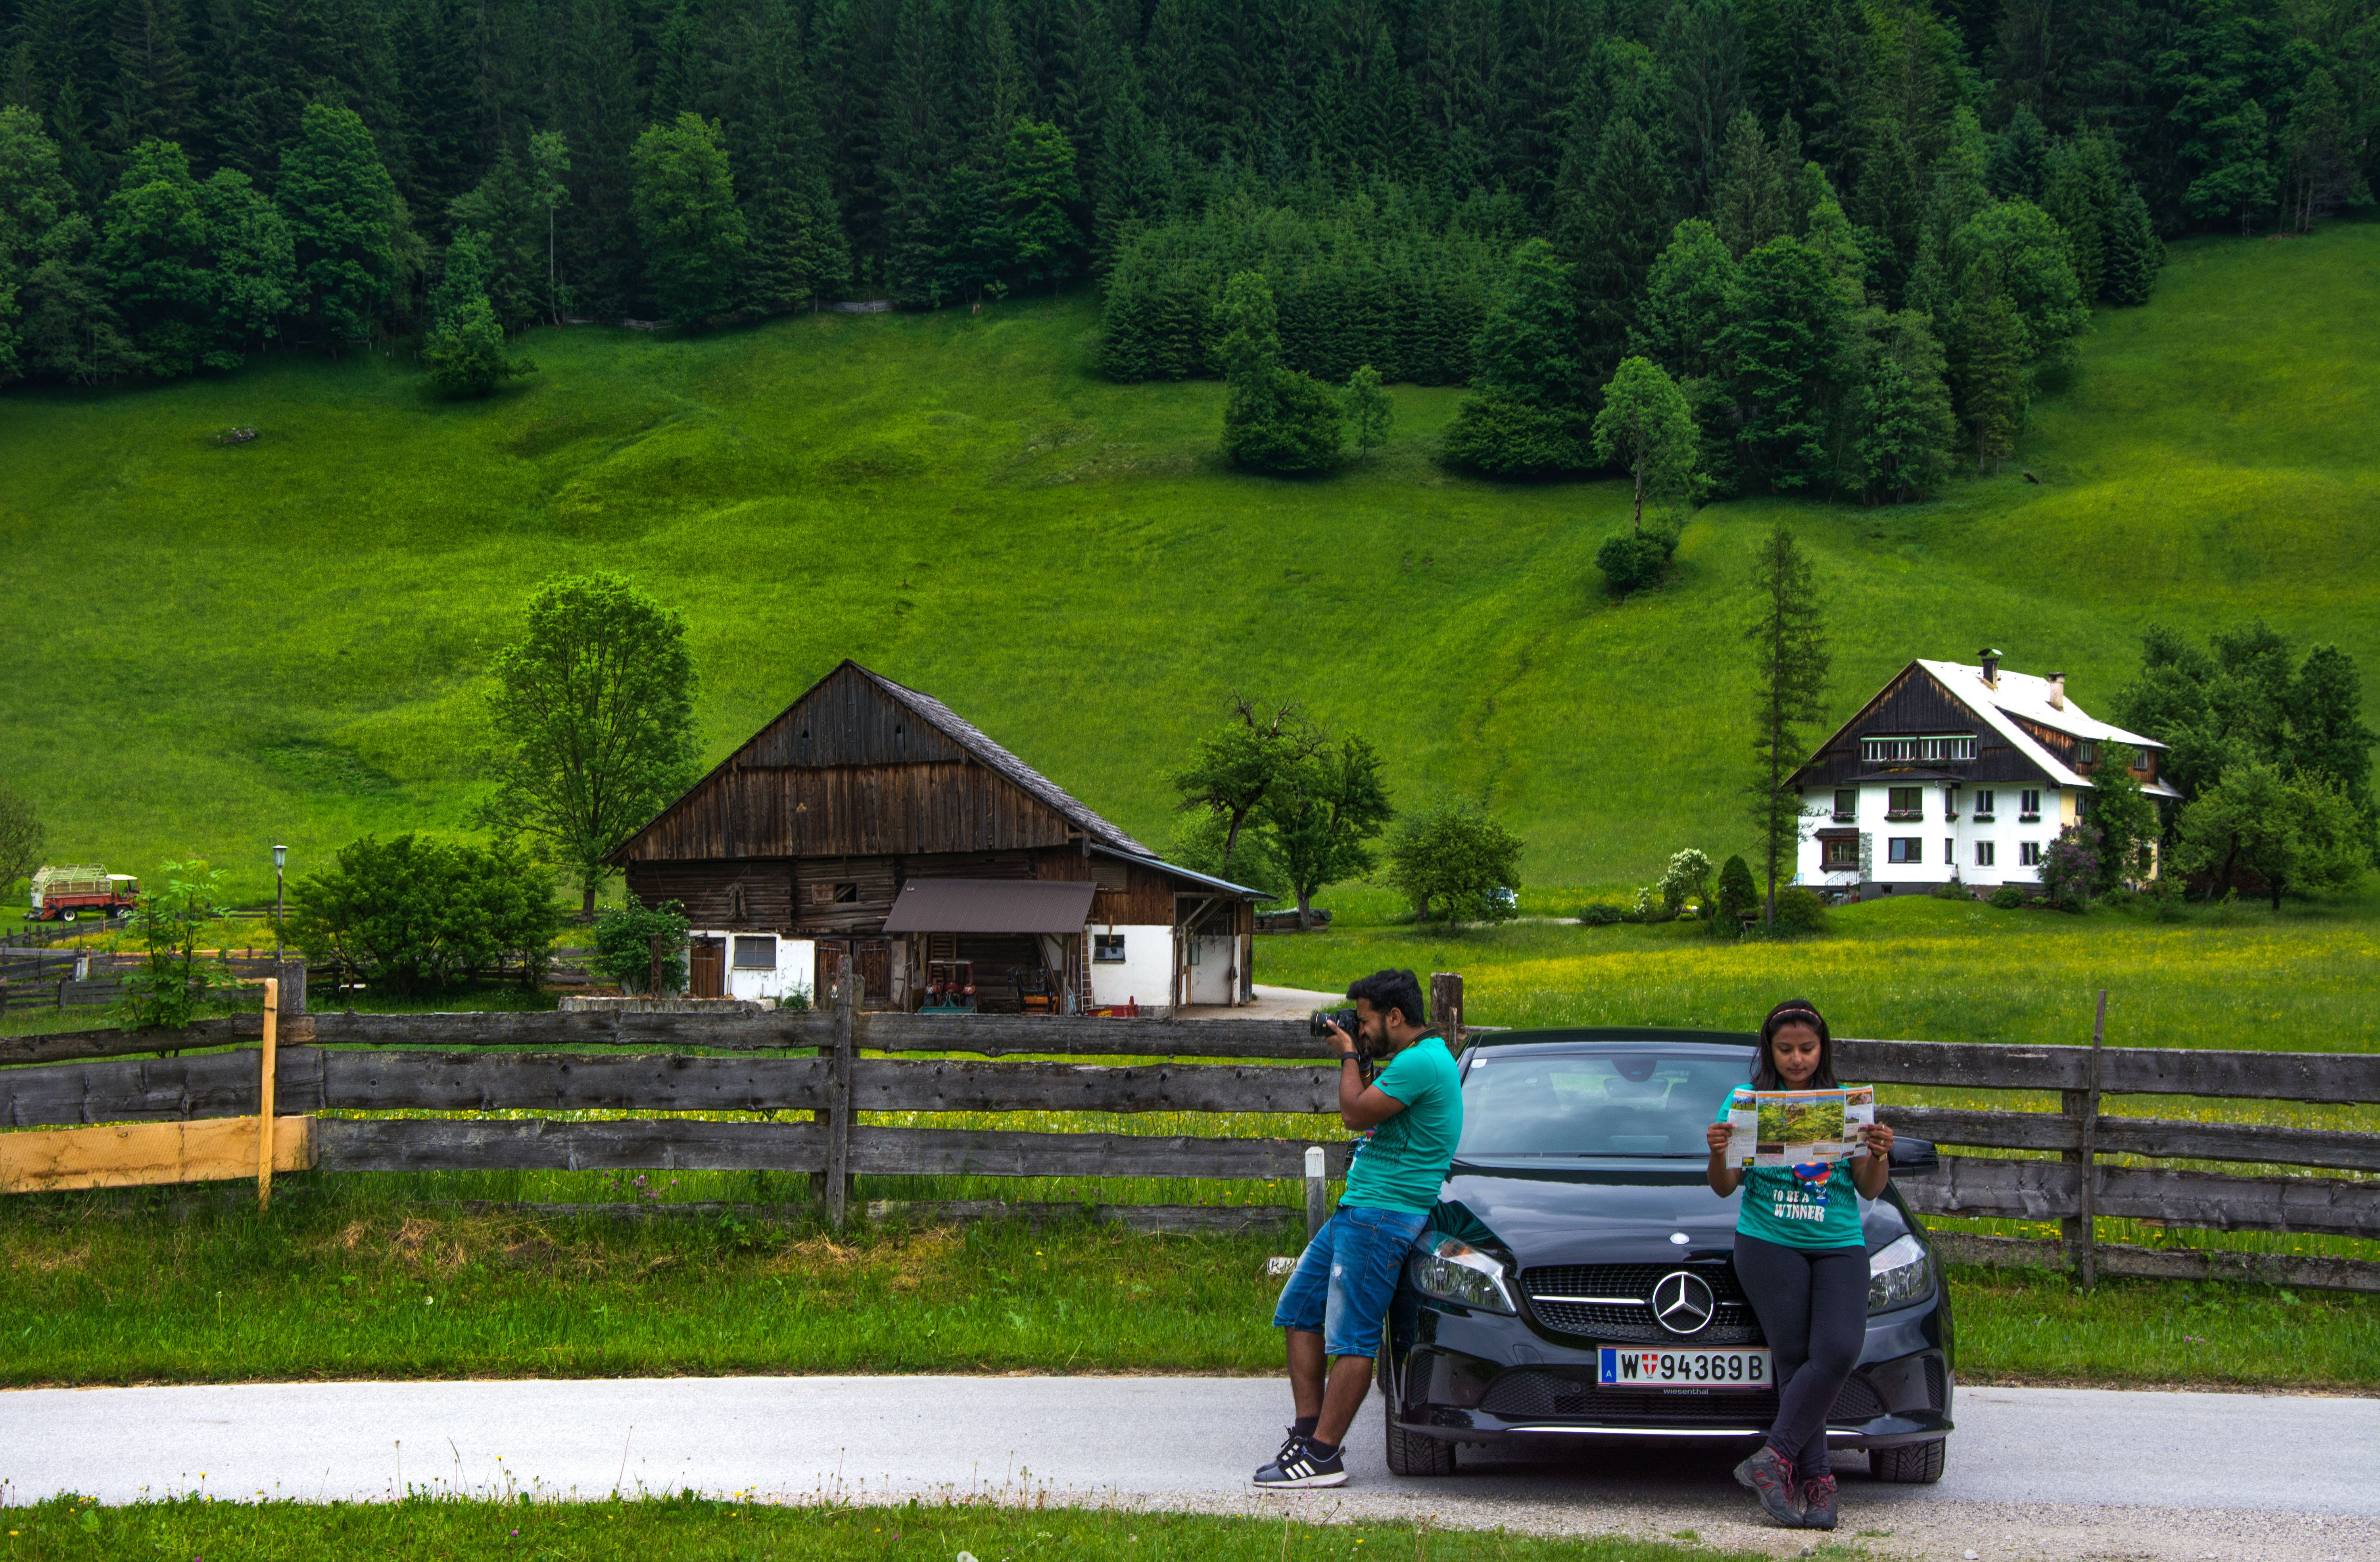 It was an amazing stay in this scenic village of Austria called Gosau : TravelAnubhav (Travel Anubhav).